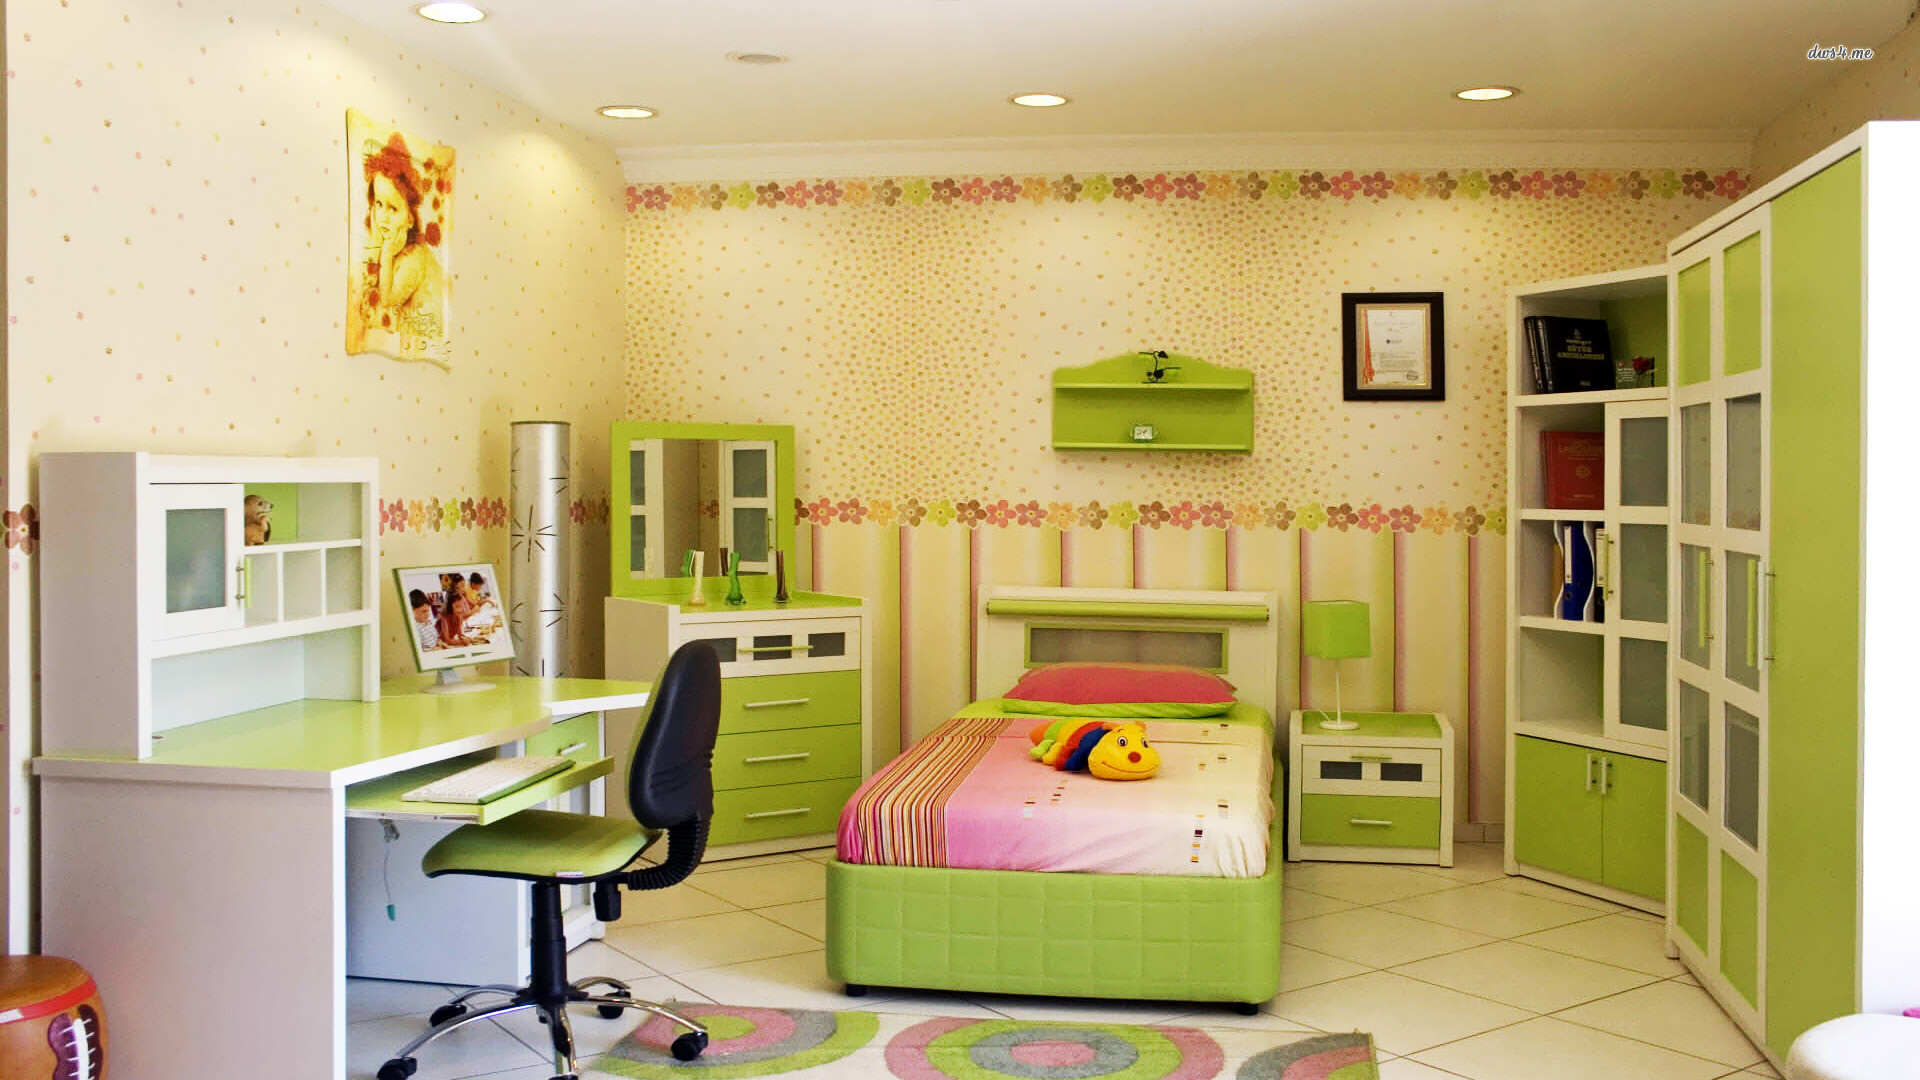 Best ideas about Kids Room Wallpaper . Save or Pin Wallpaper Kids Room WallpaperSafari Now.